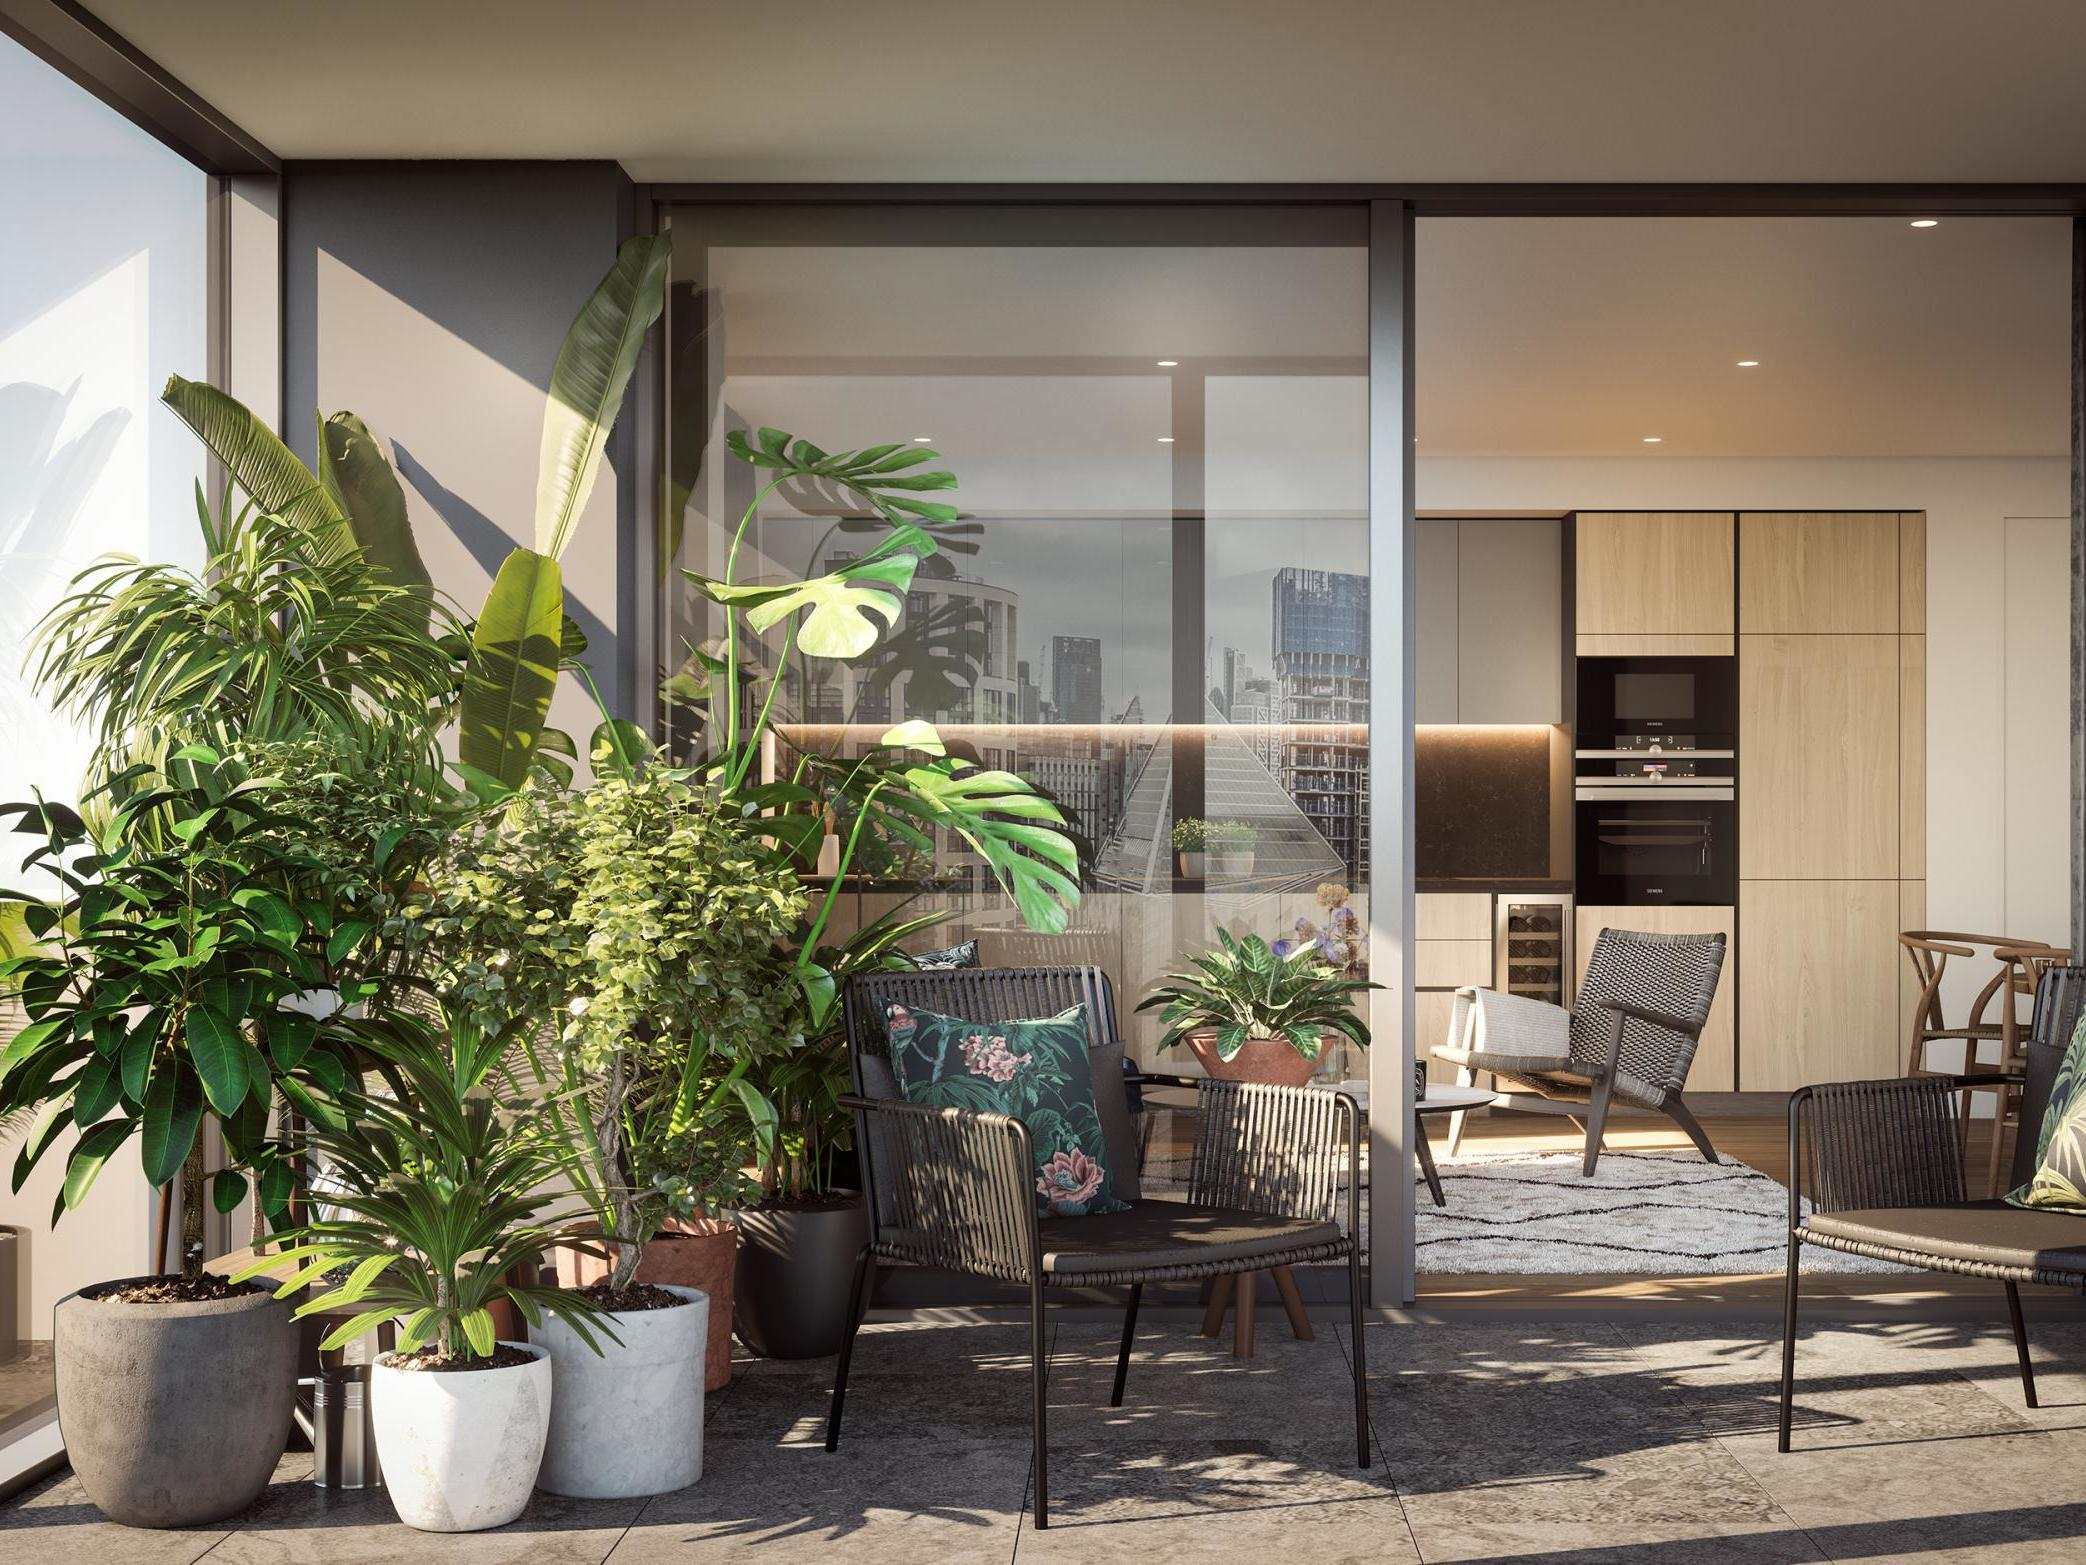 How property developers are getting creative with interior design